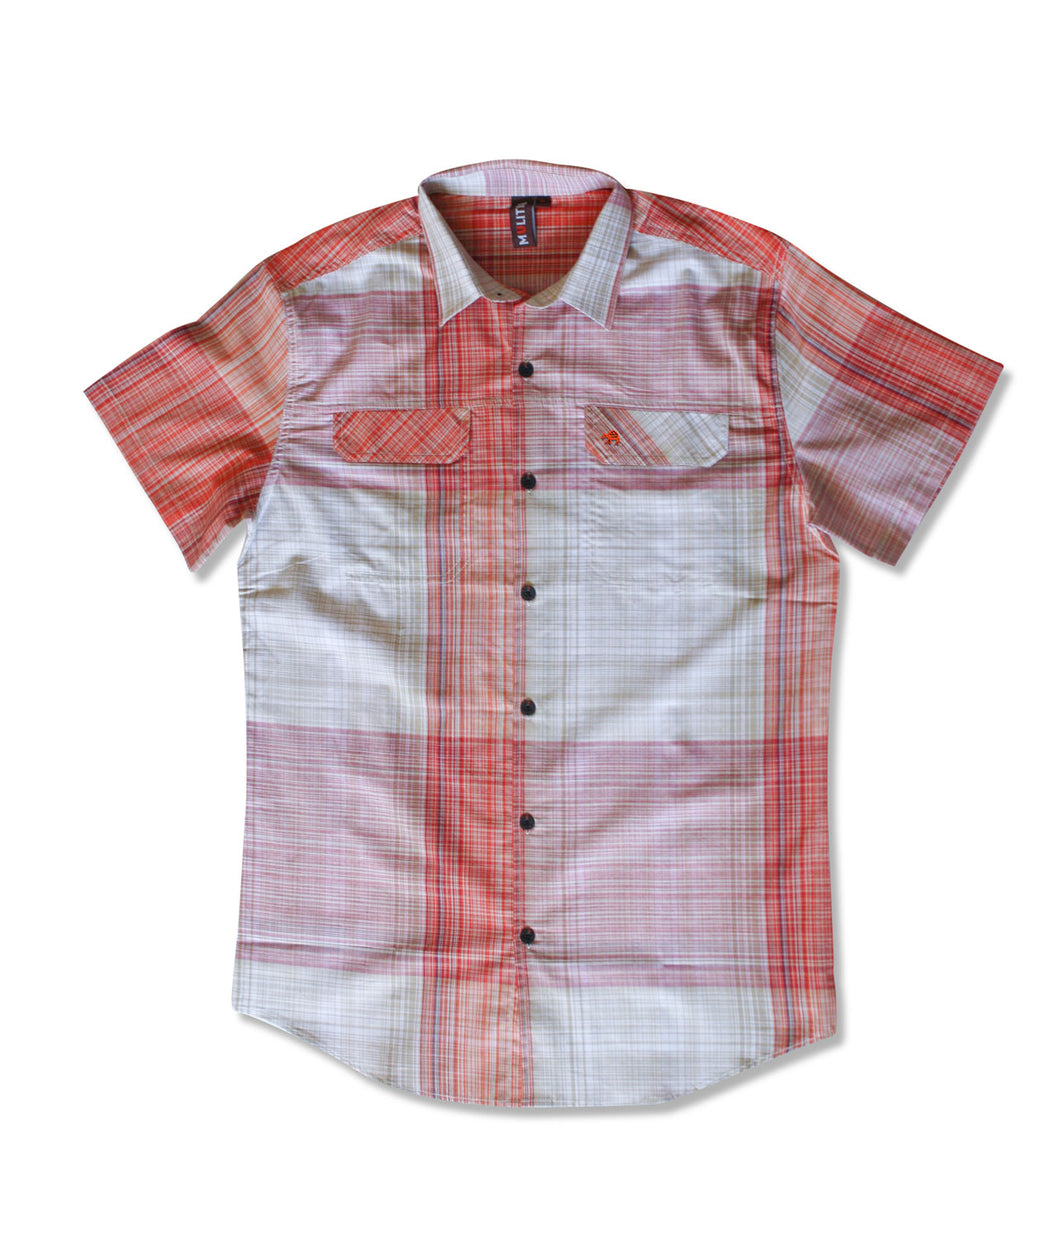 Jive Shirt in Sunset Super Gingham